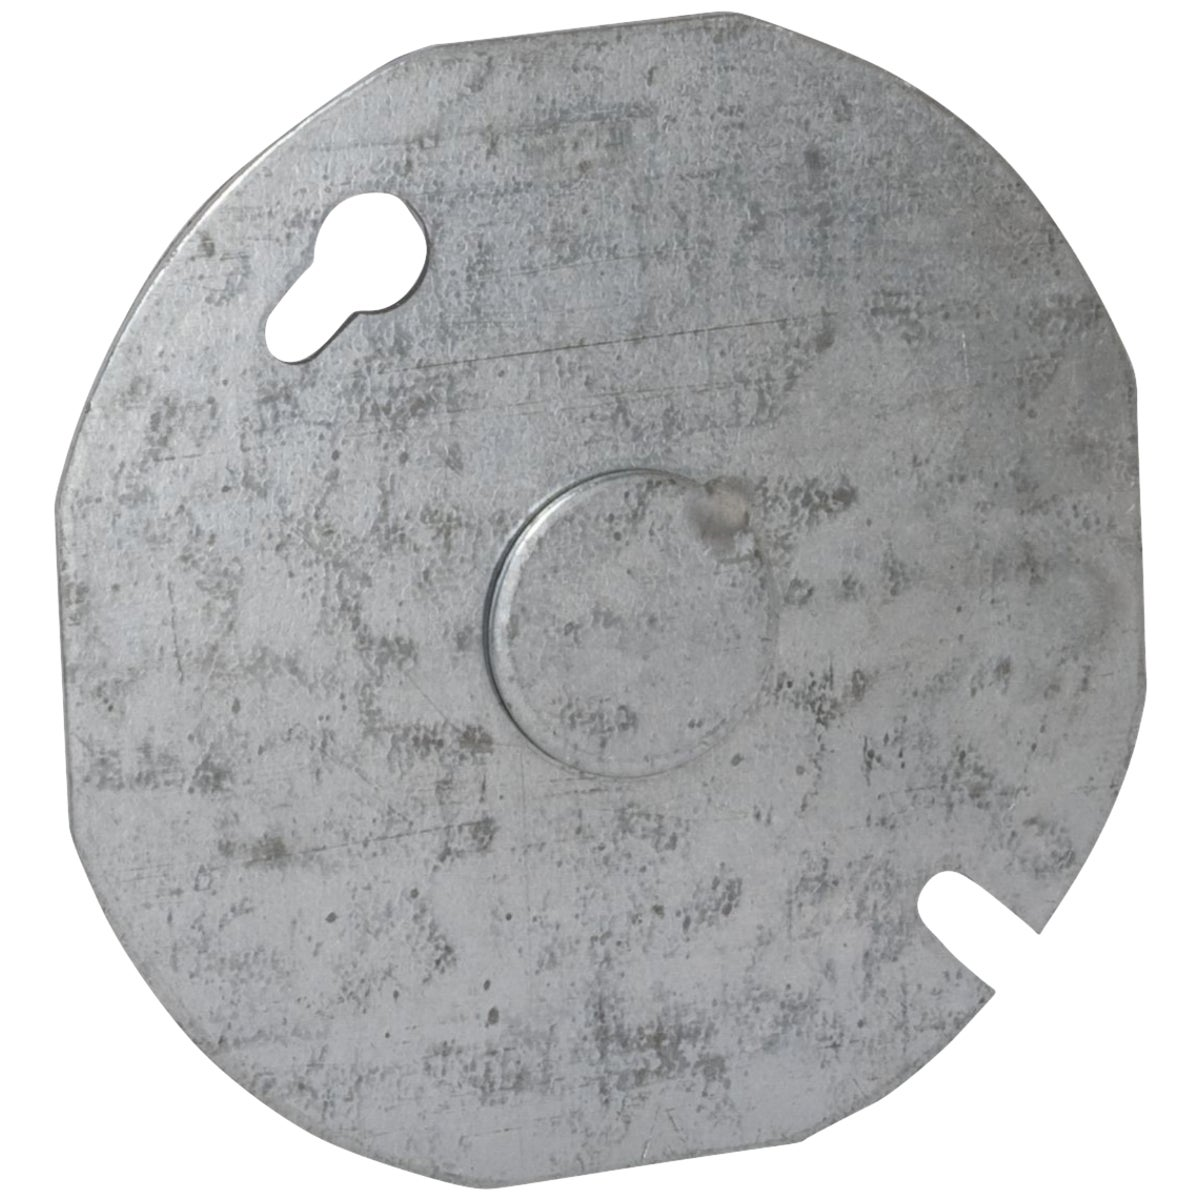 "3-1/2"" ROUND COVER - 24C6 by Thomas & Betts"